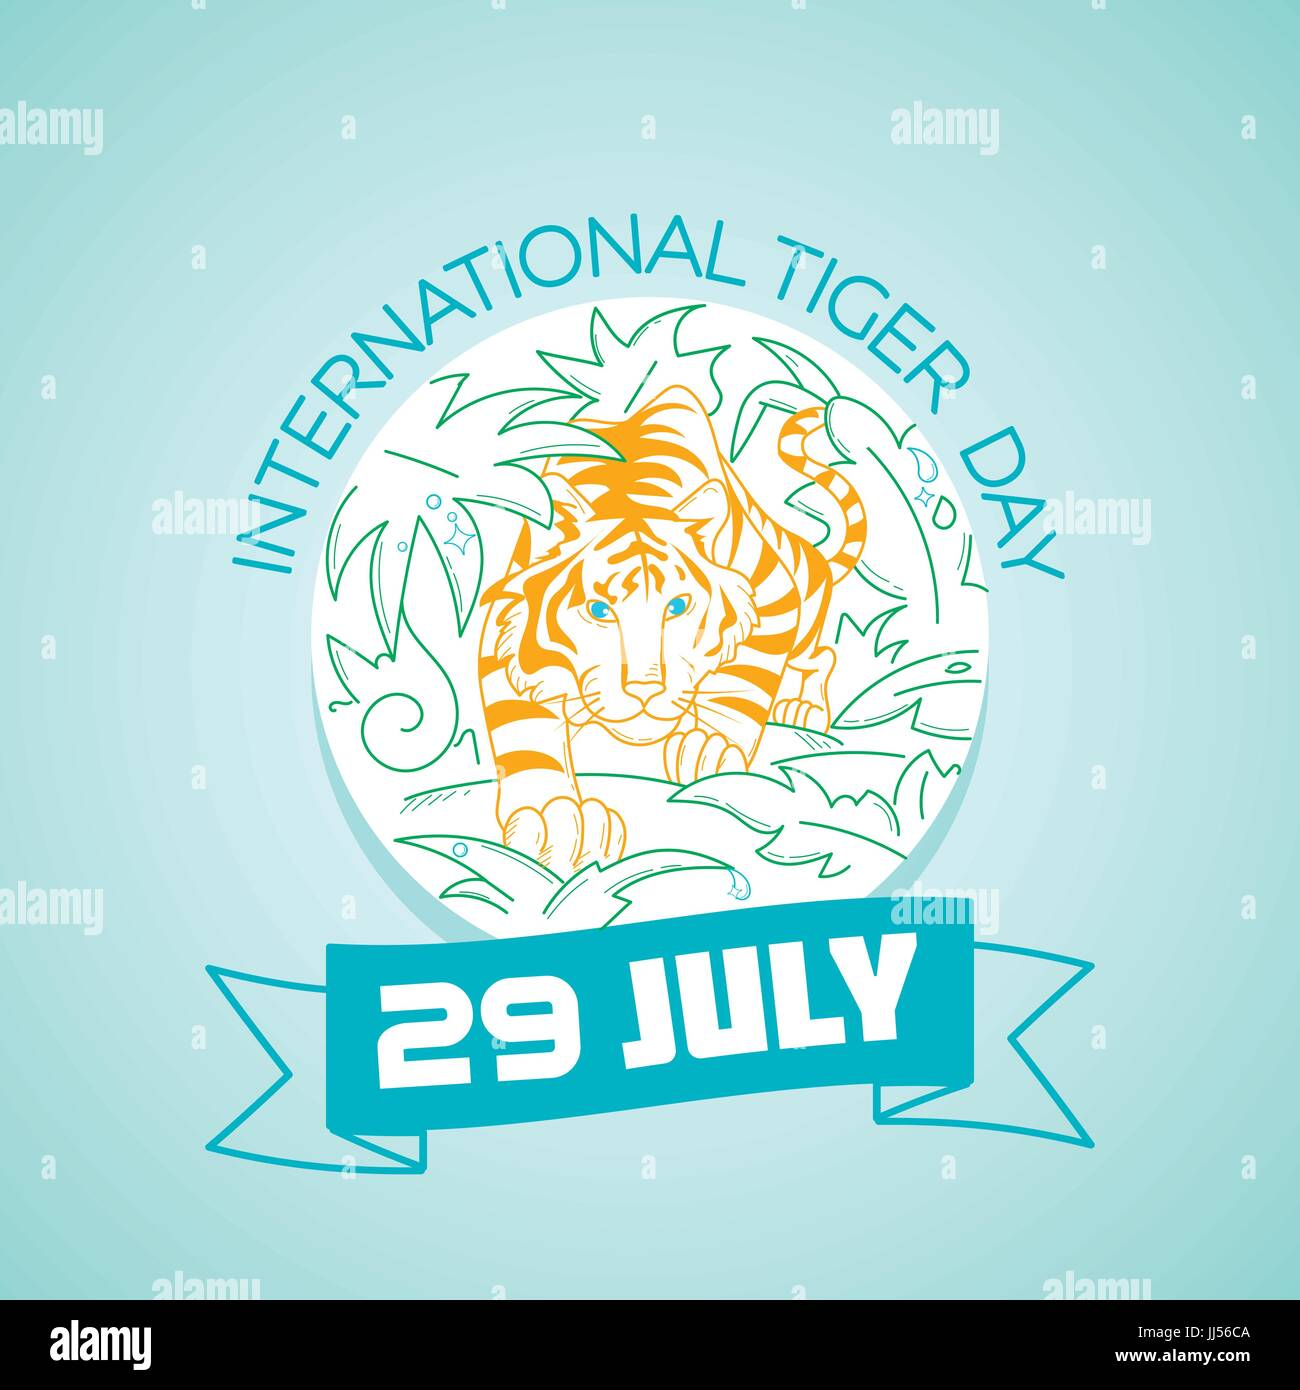 Calendar for each day on july 29. Greeting card. Holiday - International Tiger Day. Icon in the linear style Stock Vector